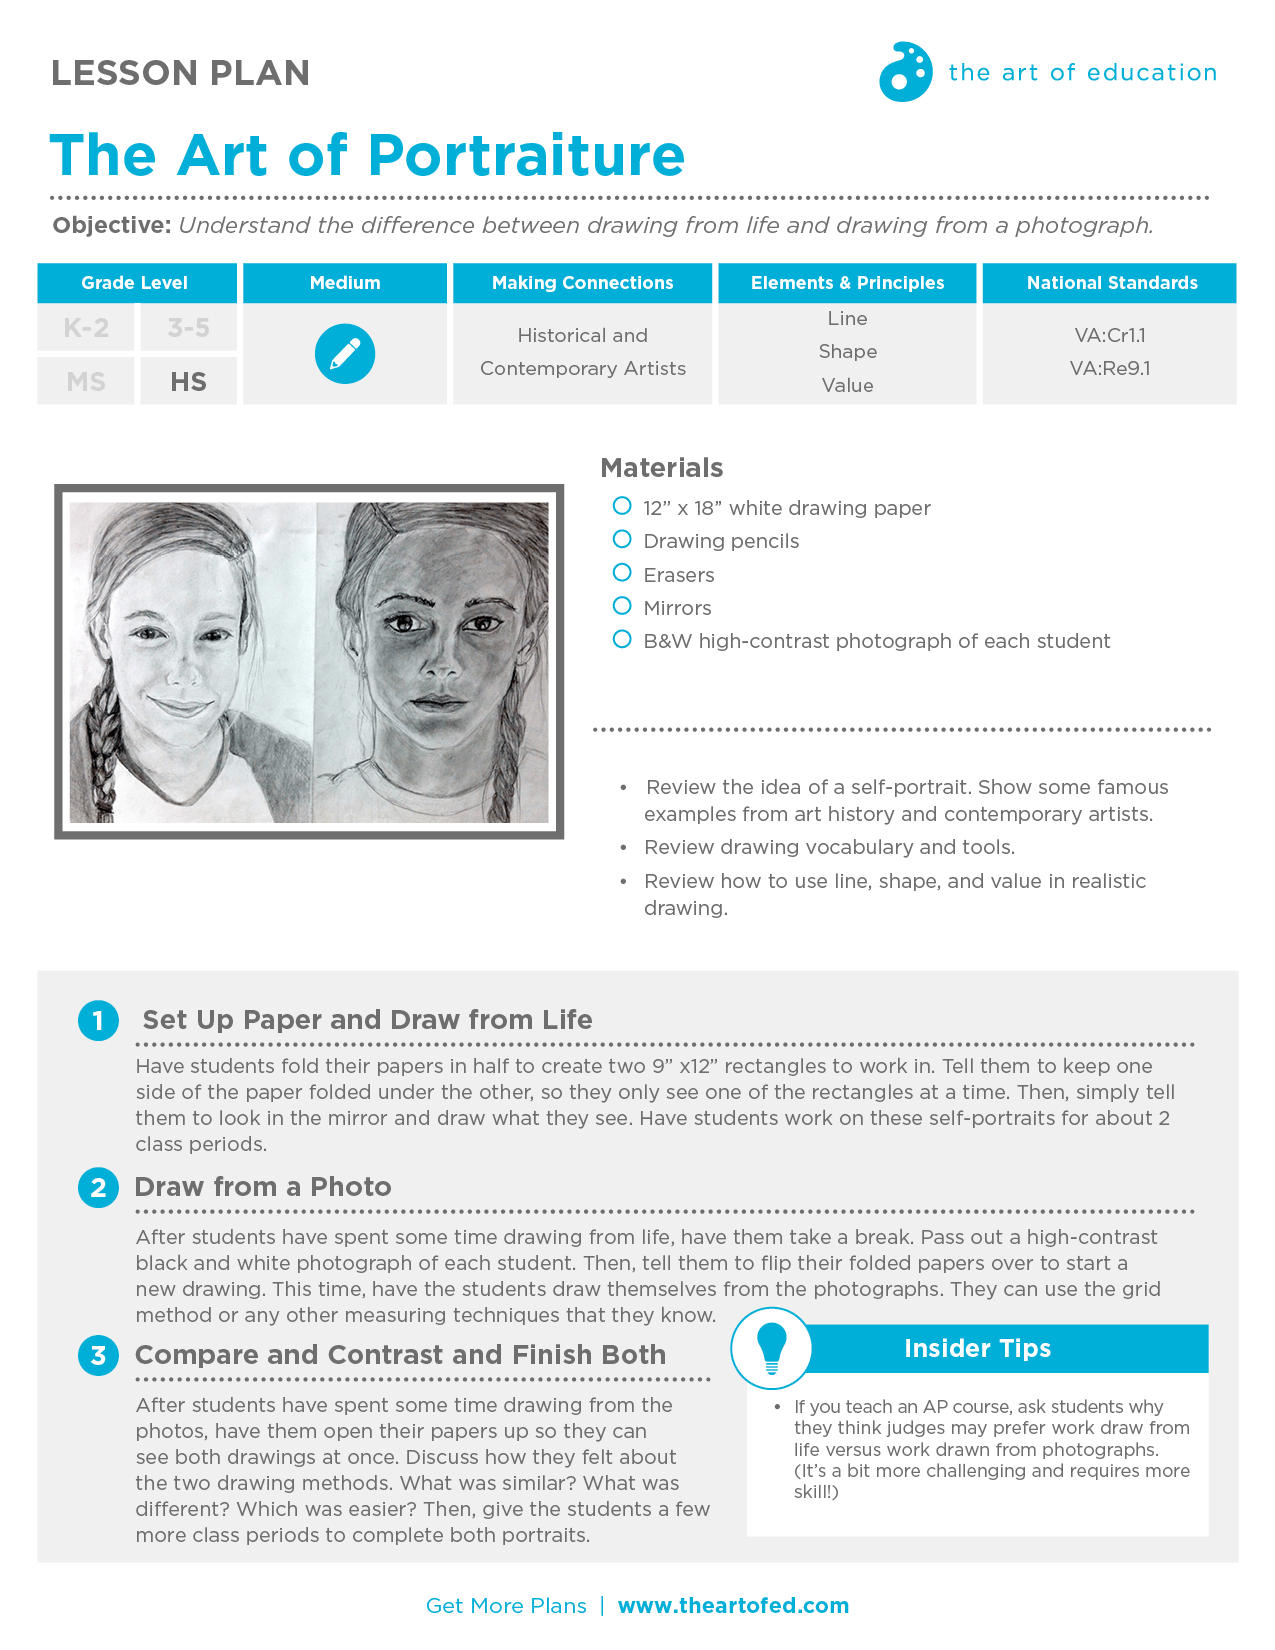 The Perfect Introduction To Portraiture For High School